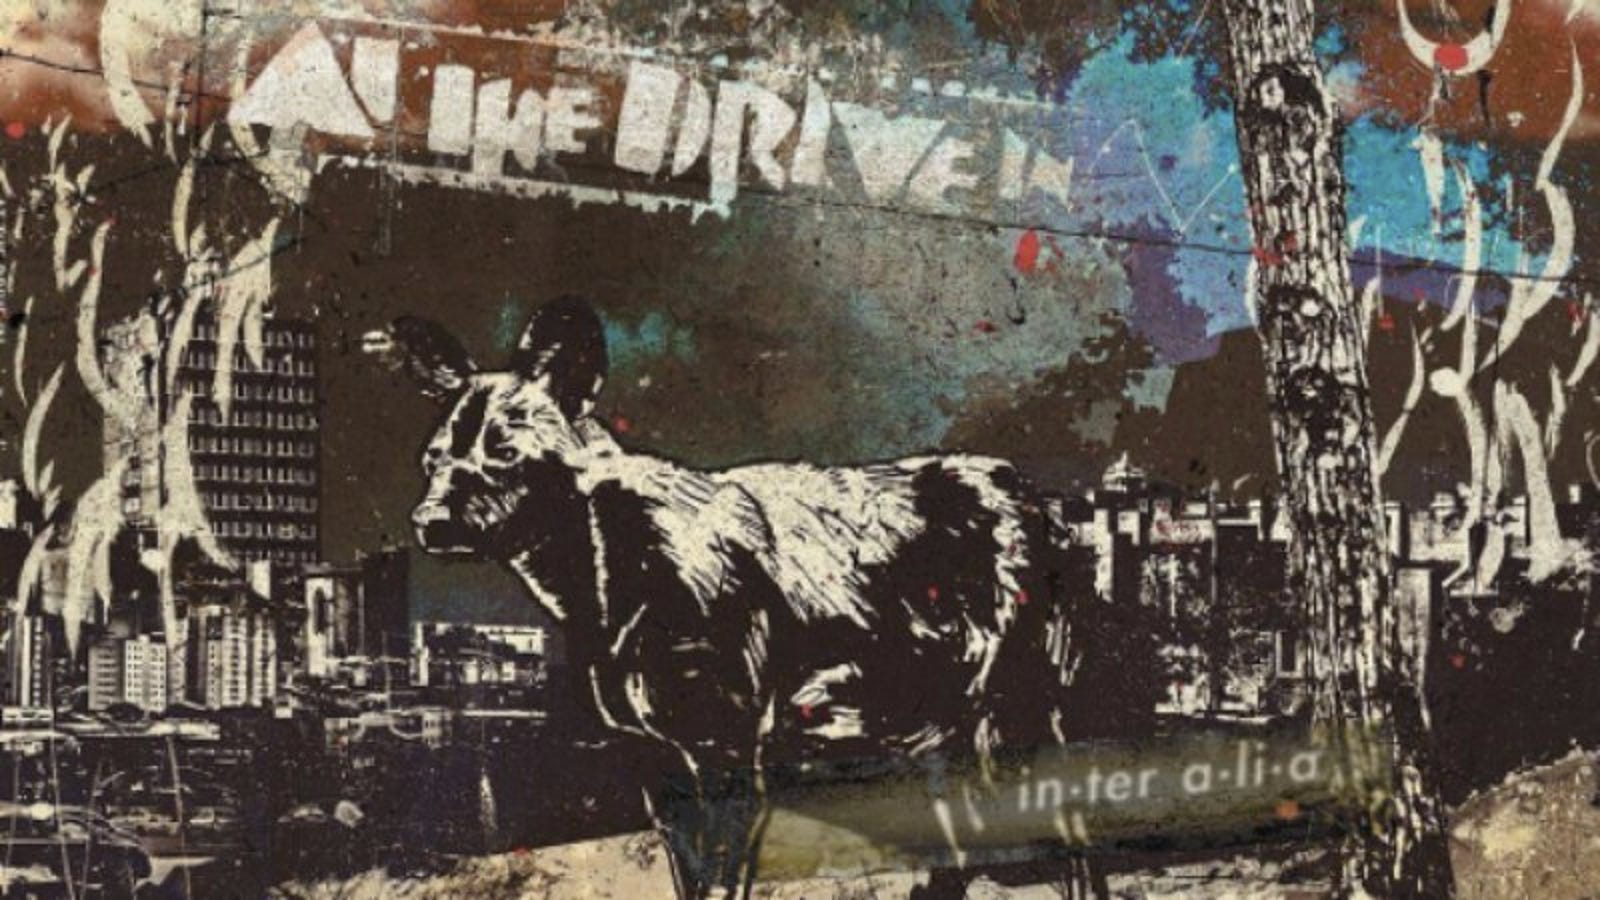 The new At The Drive-In record is exactly what you don't want from a